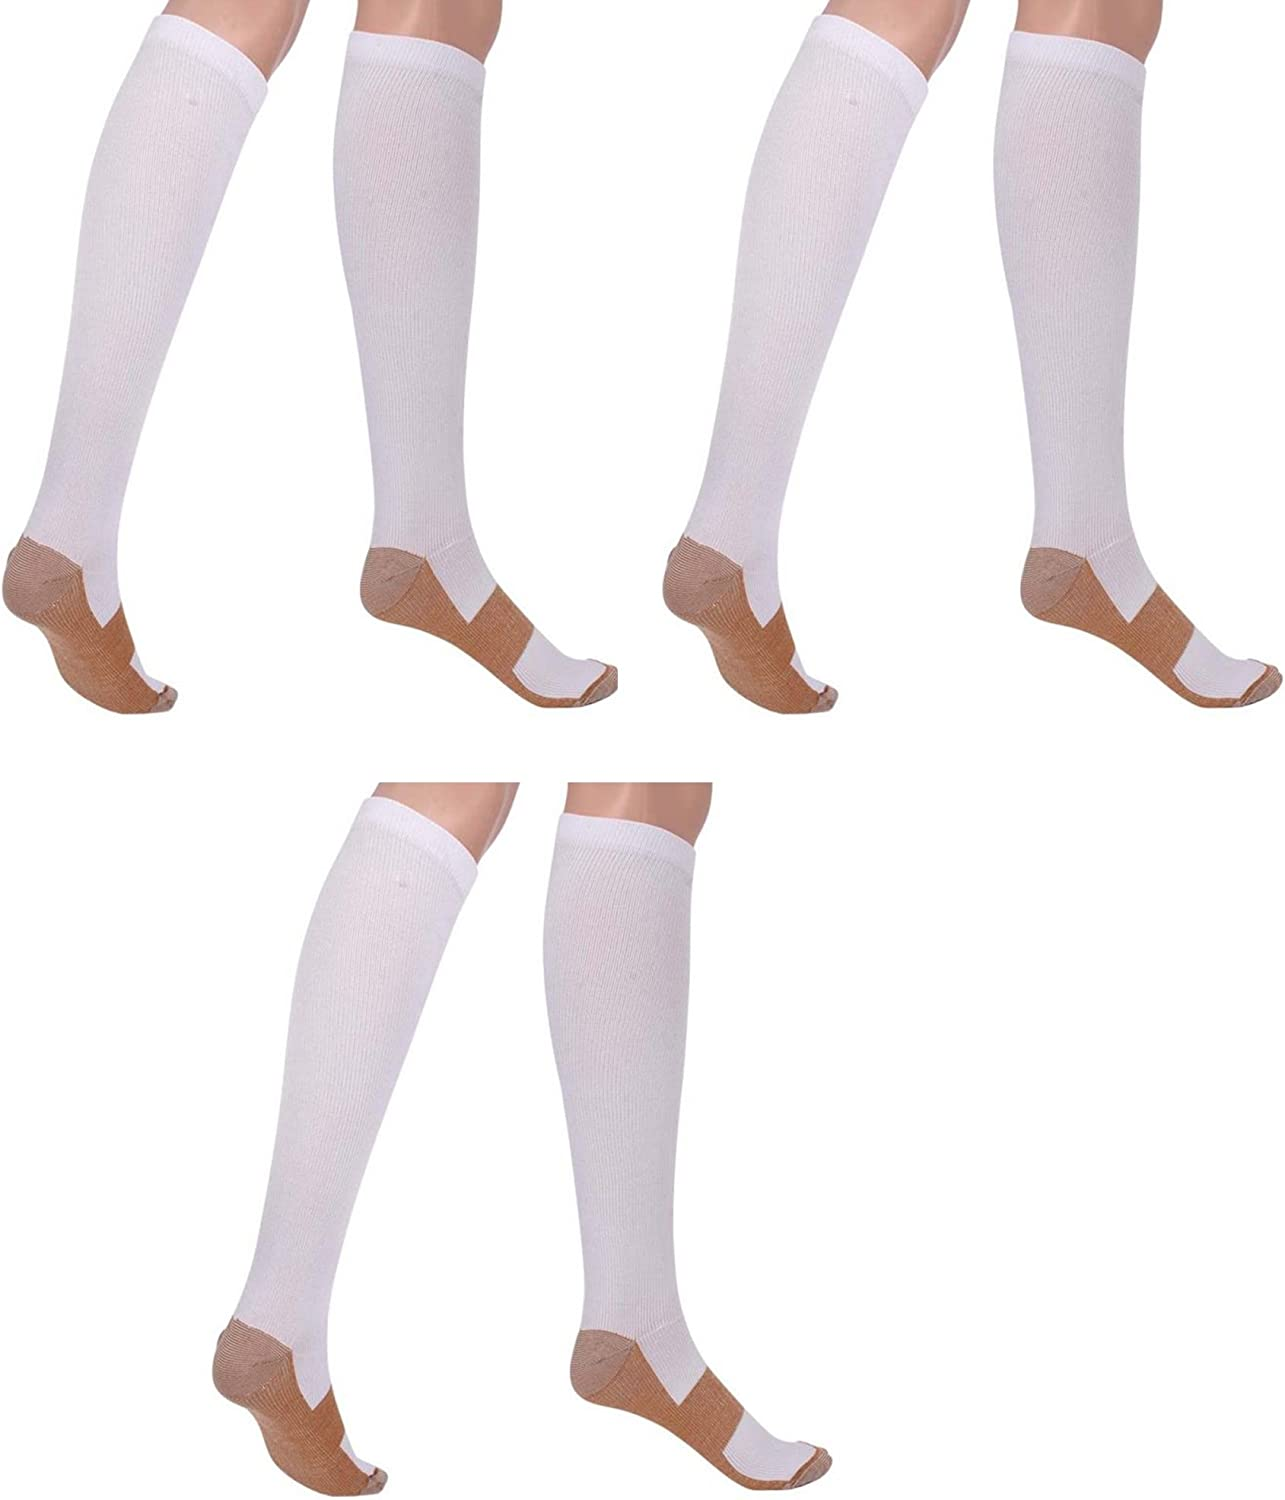 Sirosky Graduated Compression Support Socks For Men /& Women For Sports Medical